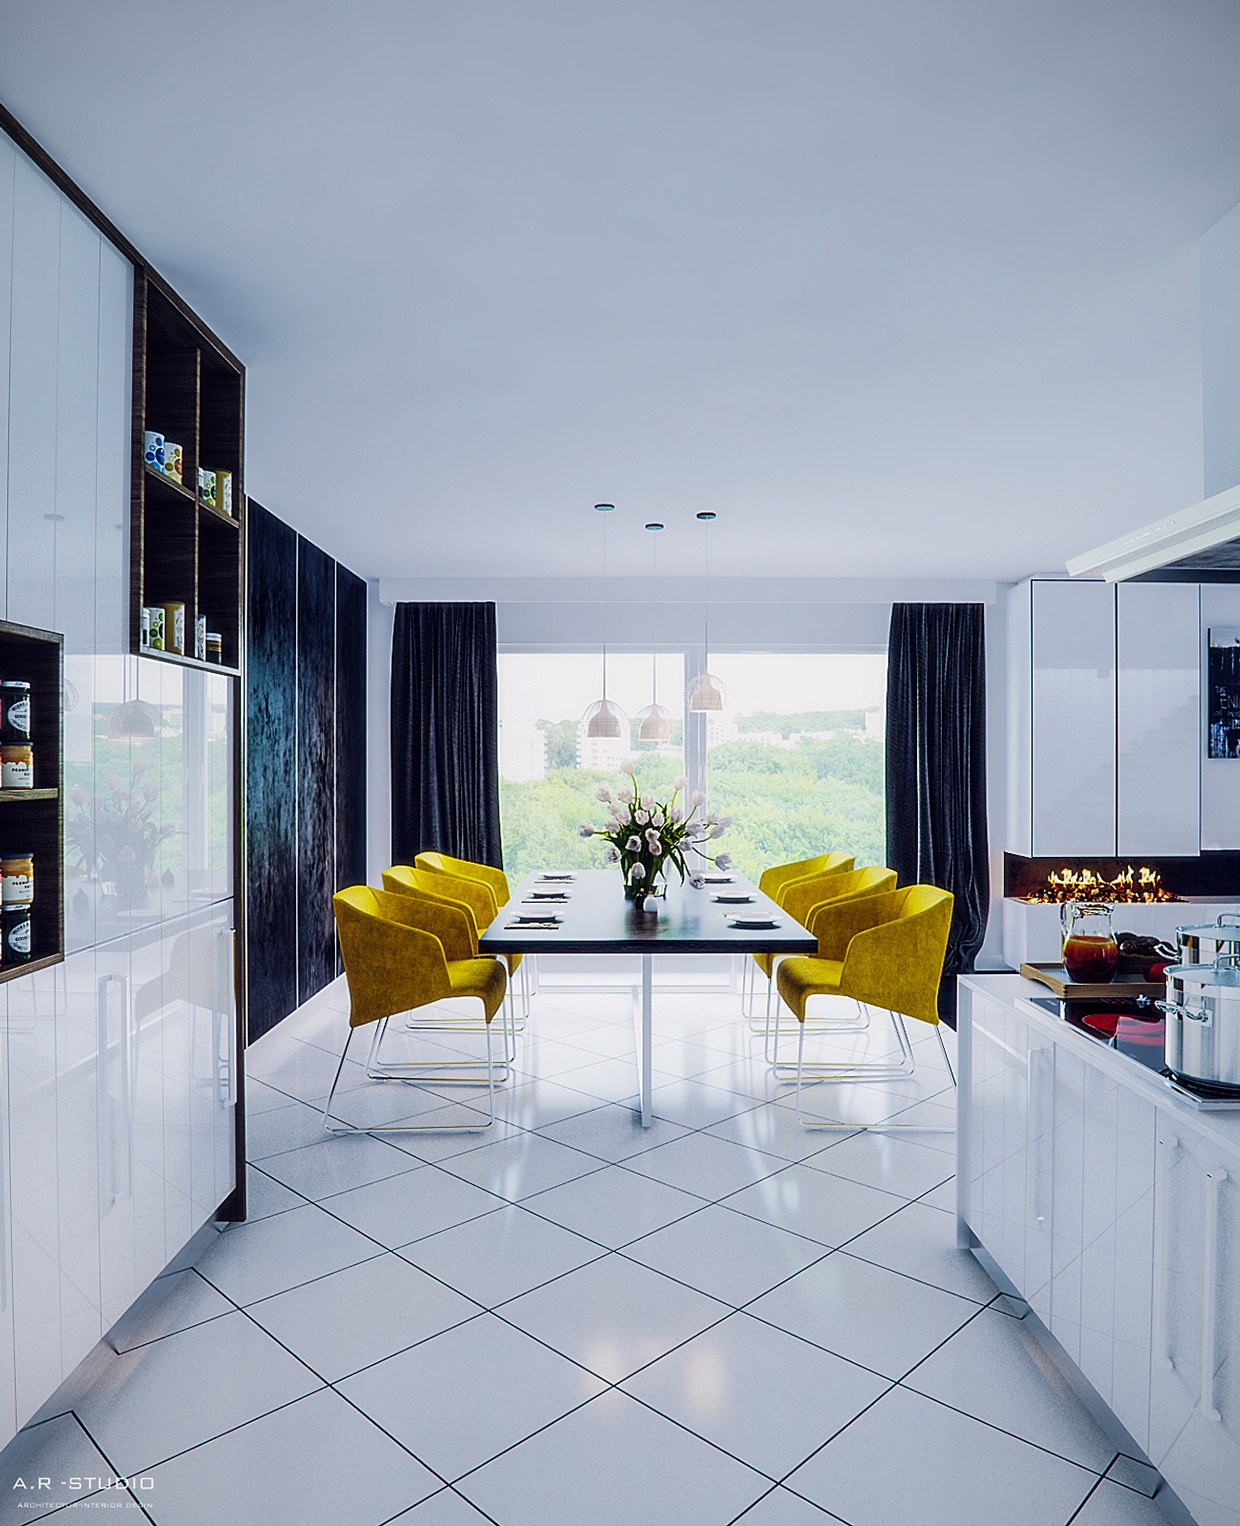 yellow-dining-chairs & yellow-dining-chairs | Interior Design Ideas.